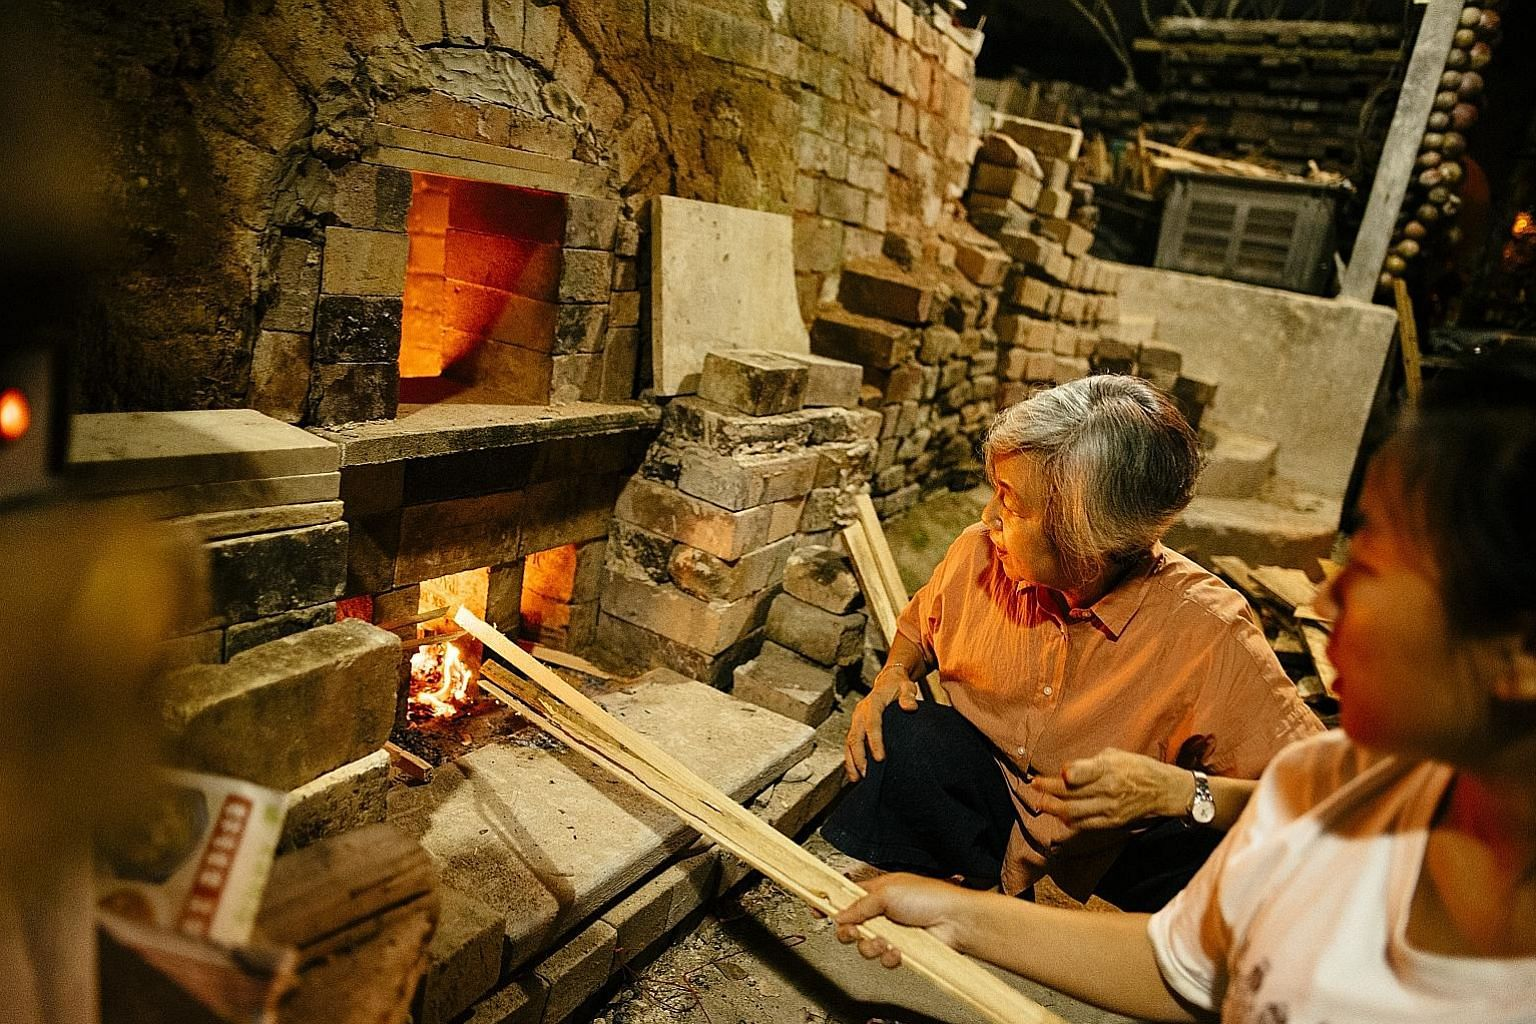 Left: Thow Kwang Industry project director Yulianti Tan, 59, and studio director Stella Tan, 27, stoke the company's dragon kiln. Below: Sam Mui Kuang Pottery is believed to have run one of the first dragon kilns here. It had to make way in 1994 for